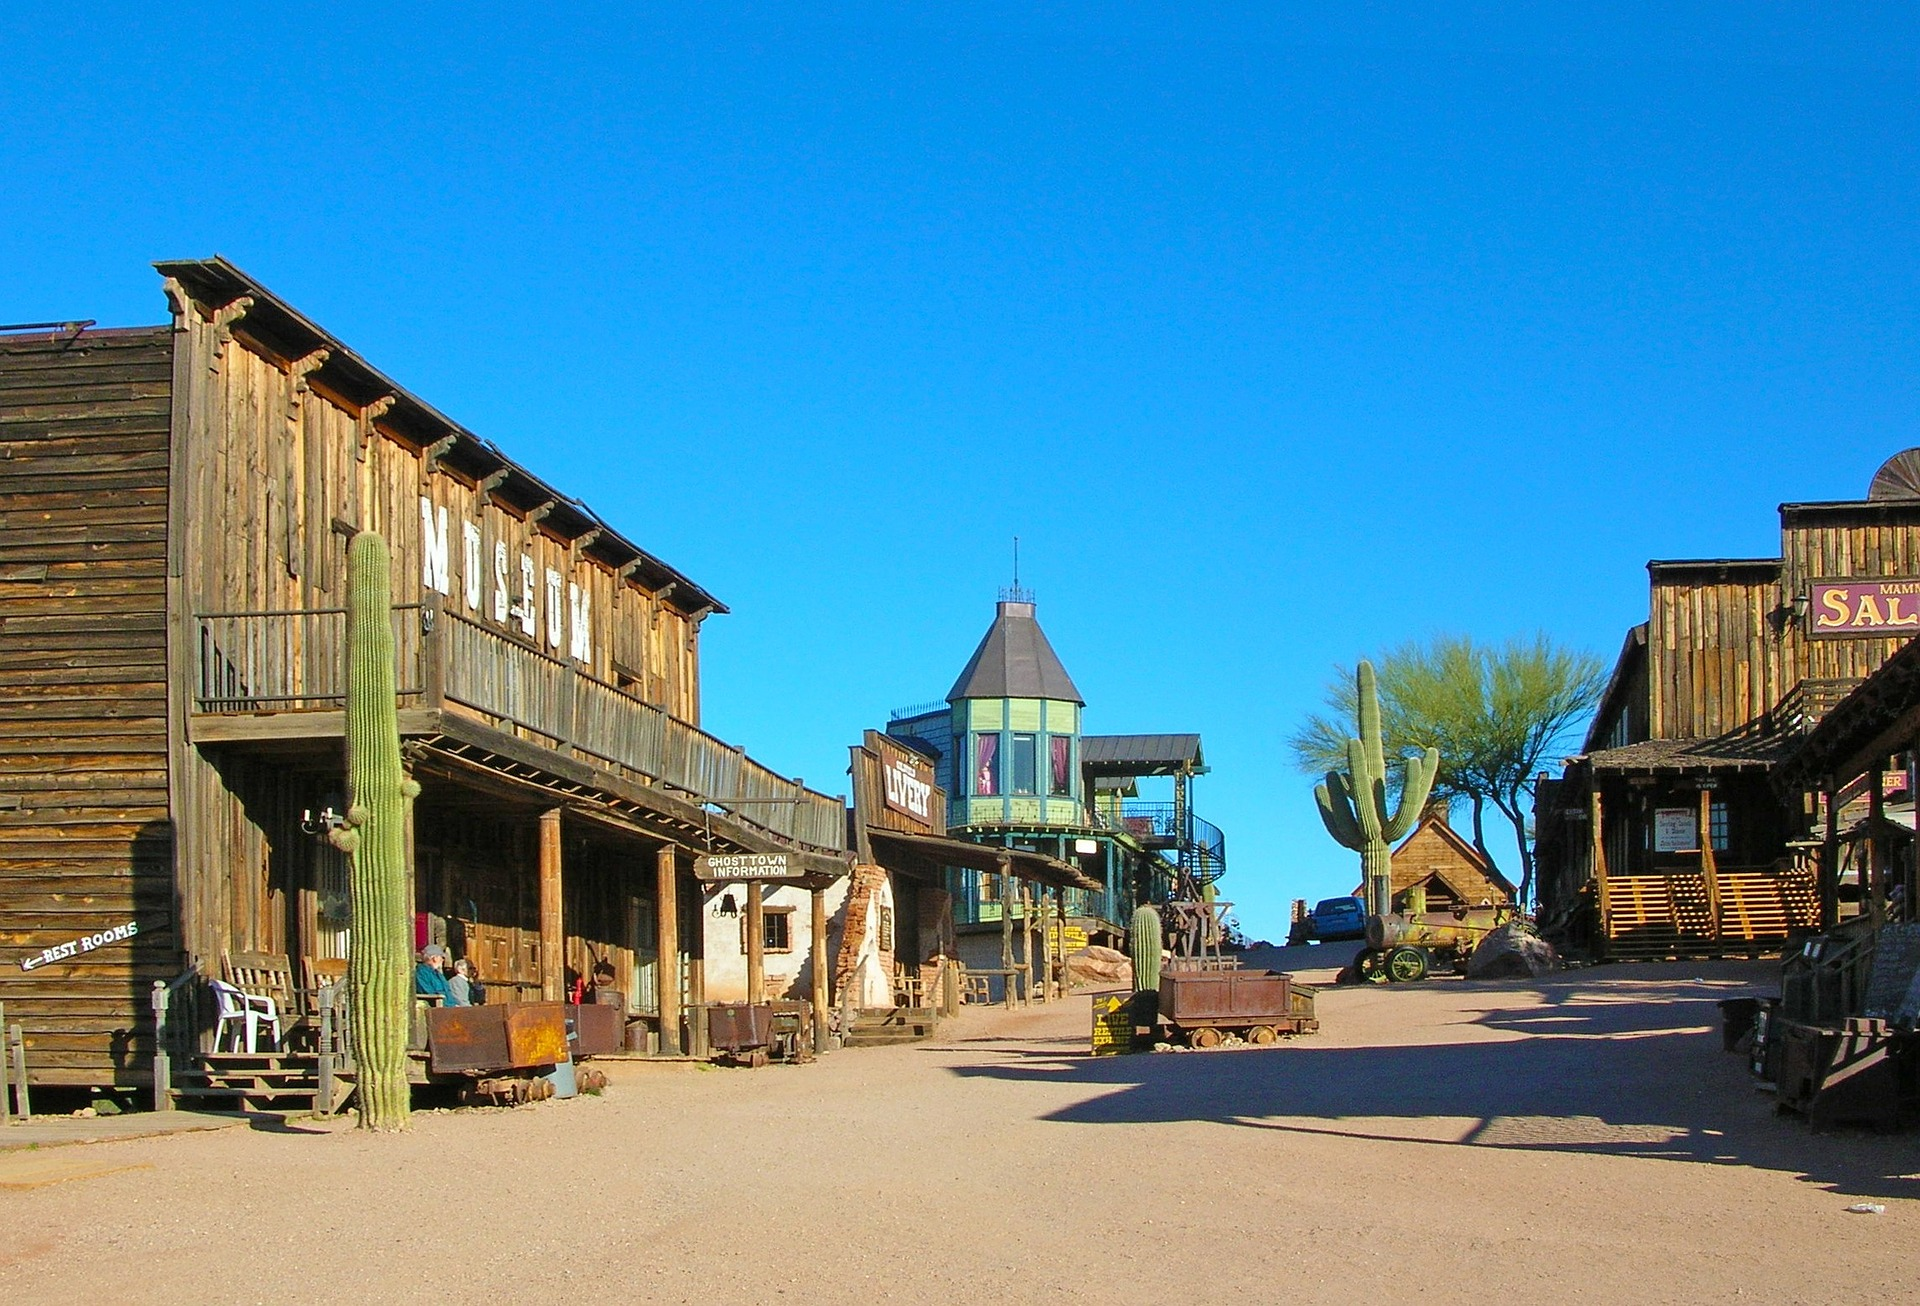 A strike in gold back in 1892 once put Goldfield on the map - now, it's a reconstructed 1890's town that features gold mine tours, Old Western Gunfights, a historical museum and more. #Arizona #kids #history #Phoenix #Mesa